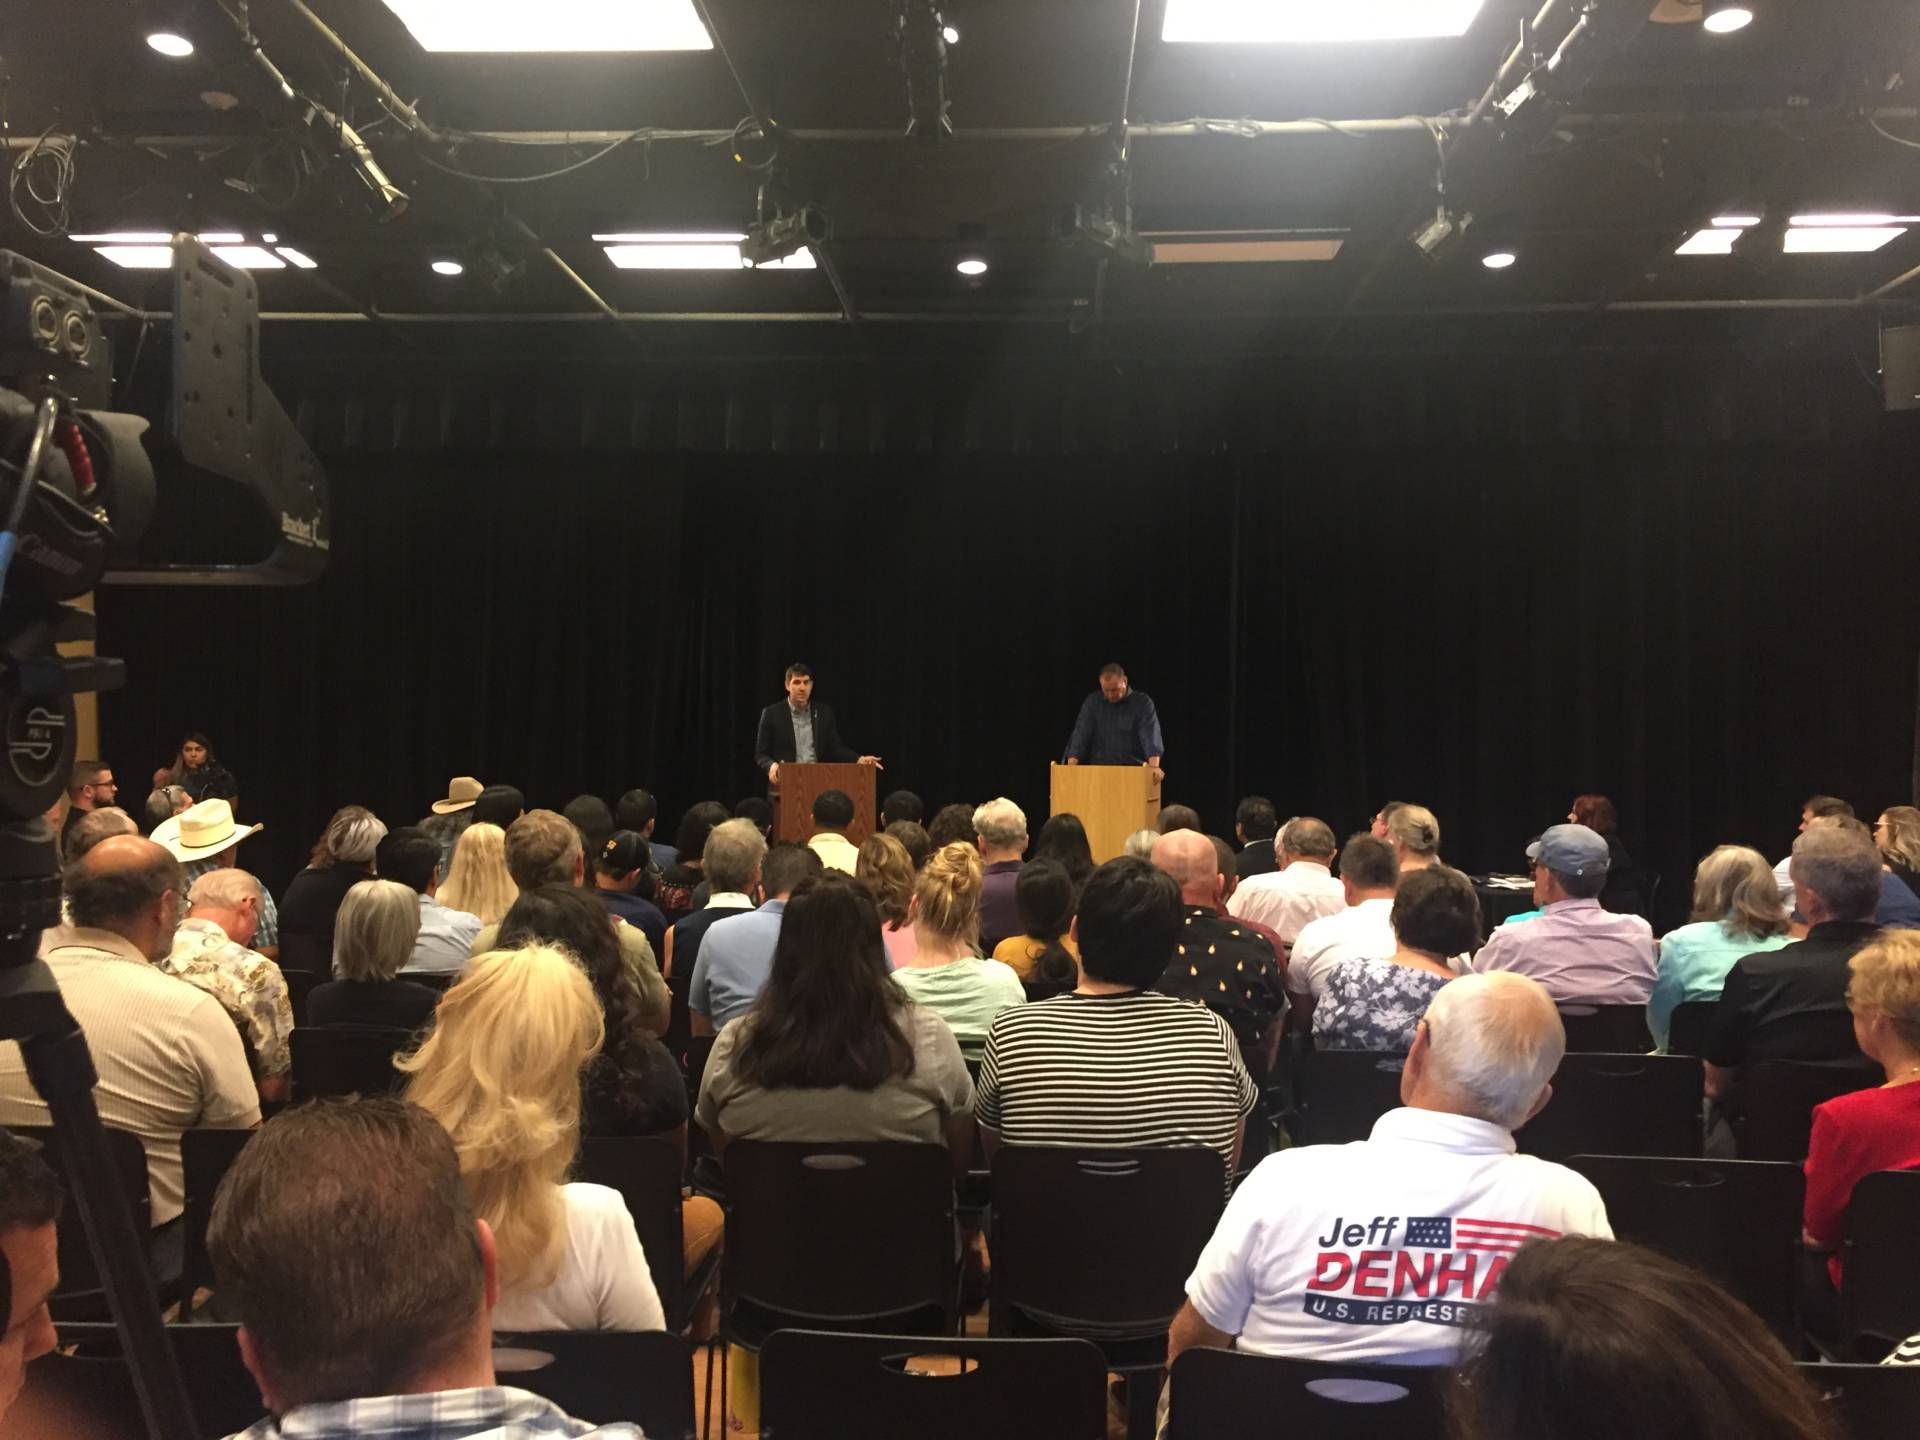 Republican Jeff Denham (R) and challenger Democrat Josh Harder (L) debate in Turlock.  Sonja Hutson/KQED